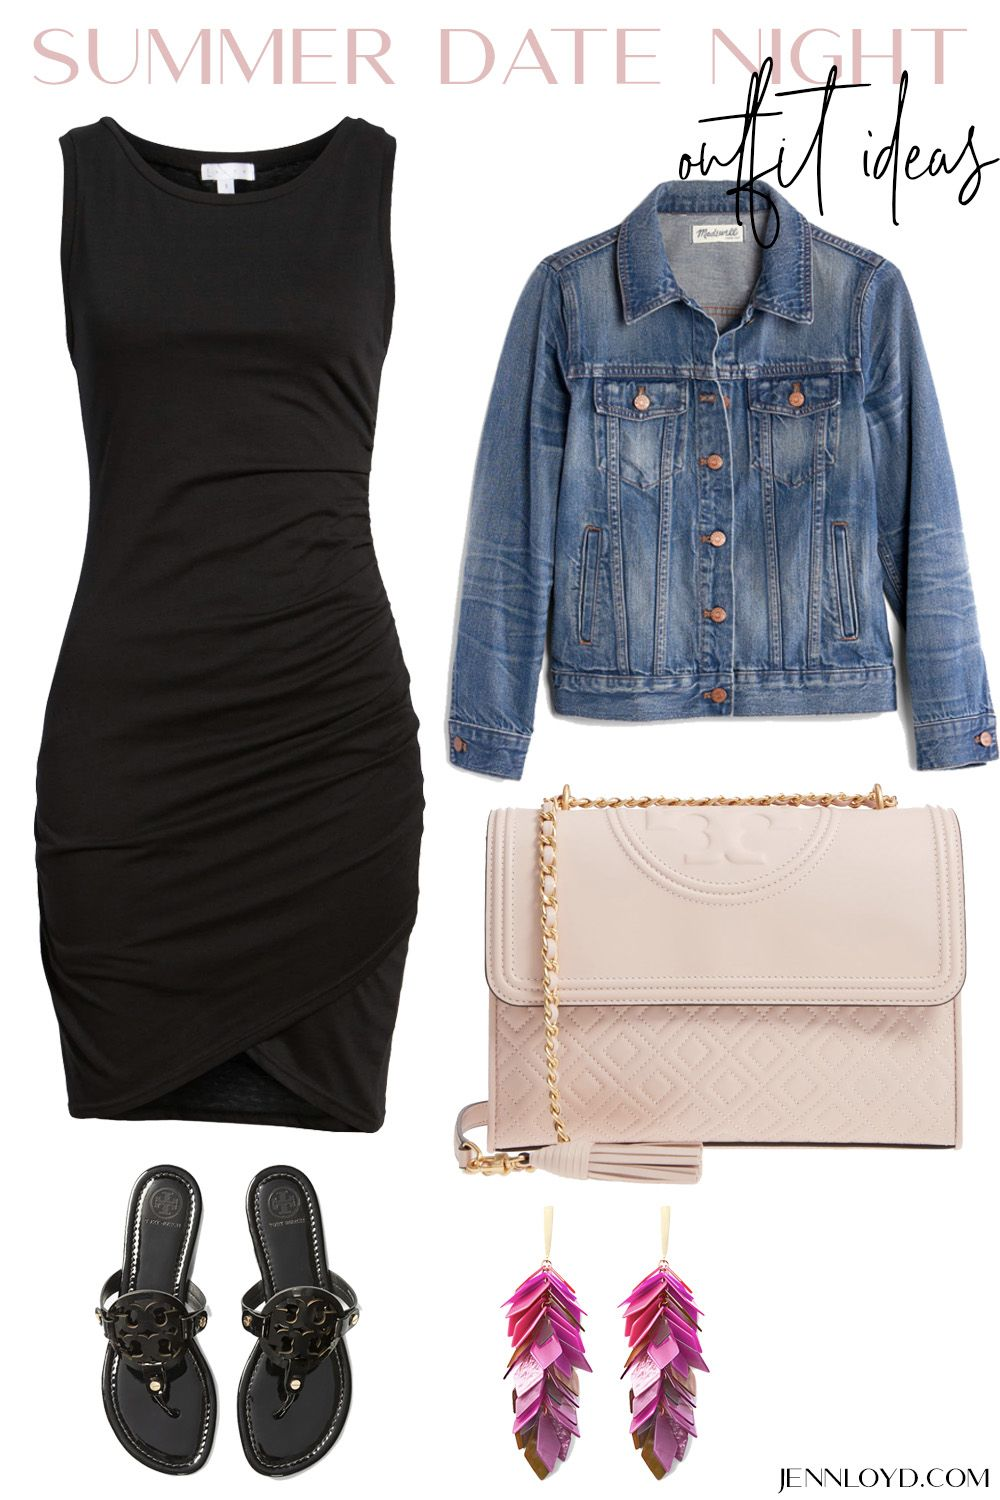 Summer Date Night Outfit Ideas -